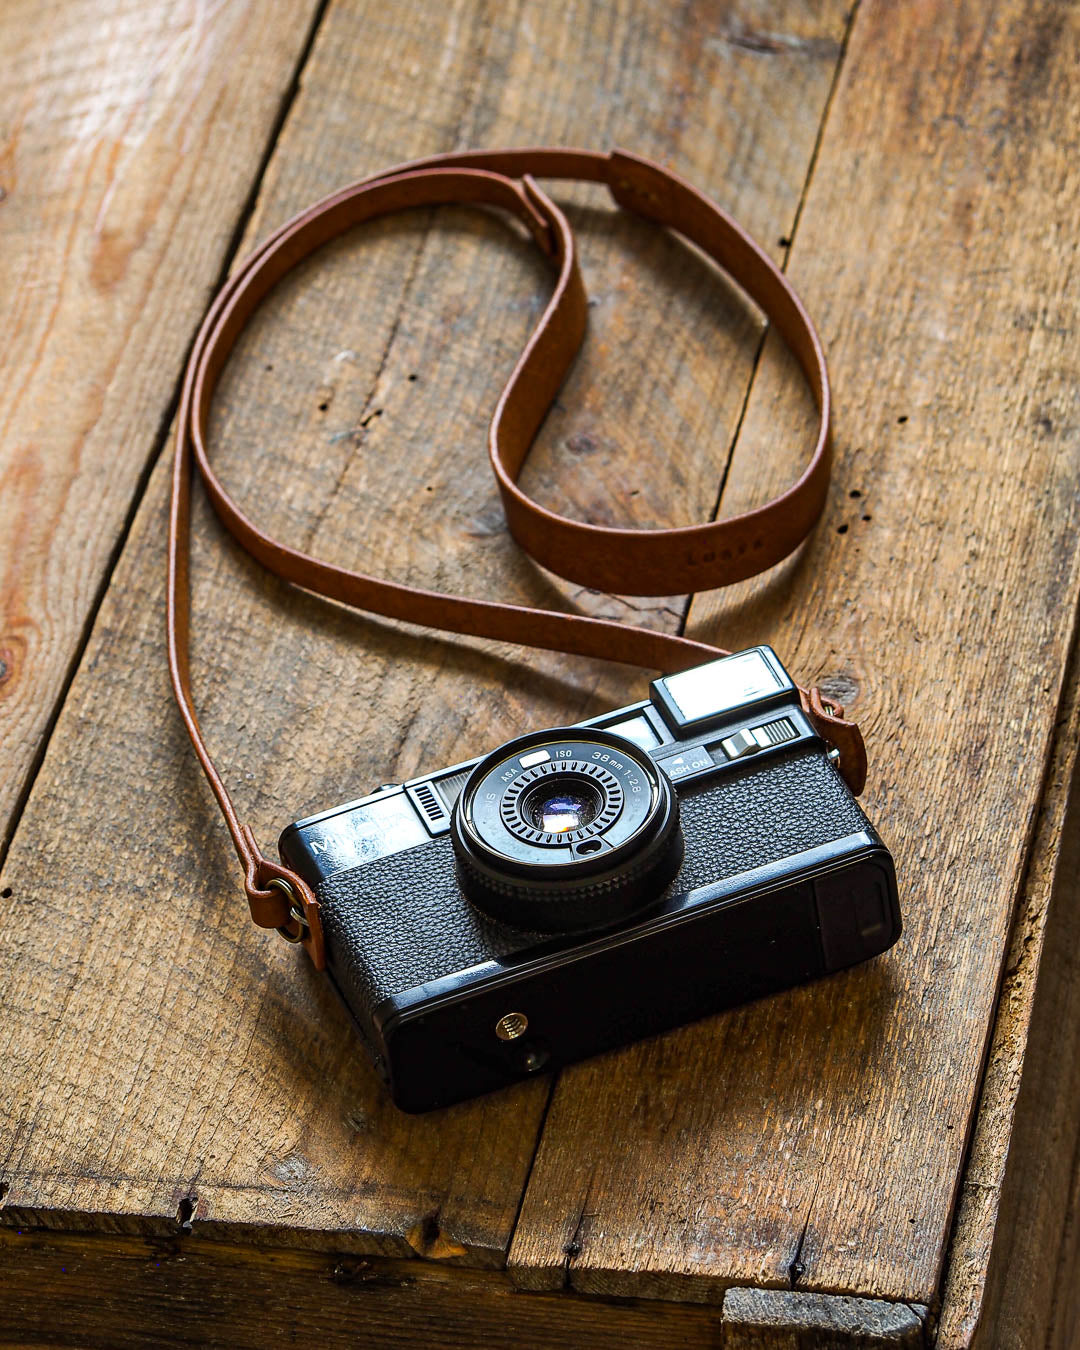 Luava handcrafted leather camera strap made with pueblo cognac, world-famous leather from Tannery Badalassi Carlo. This camera strap is with Wide neck pad and Luava has many other camera straps available like camera wrist strap.